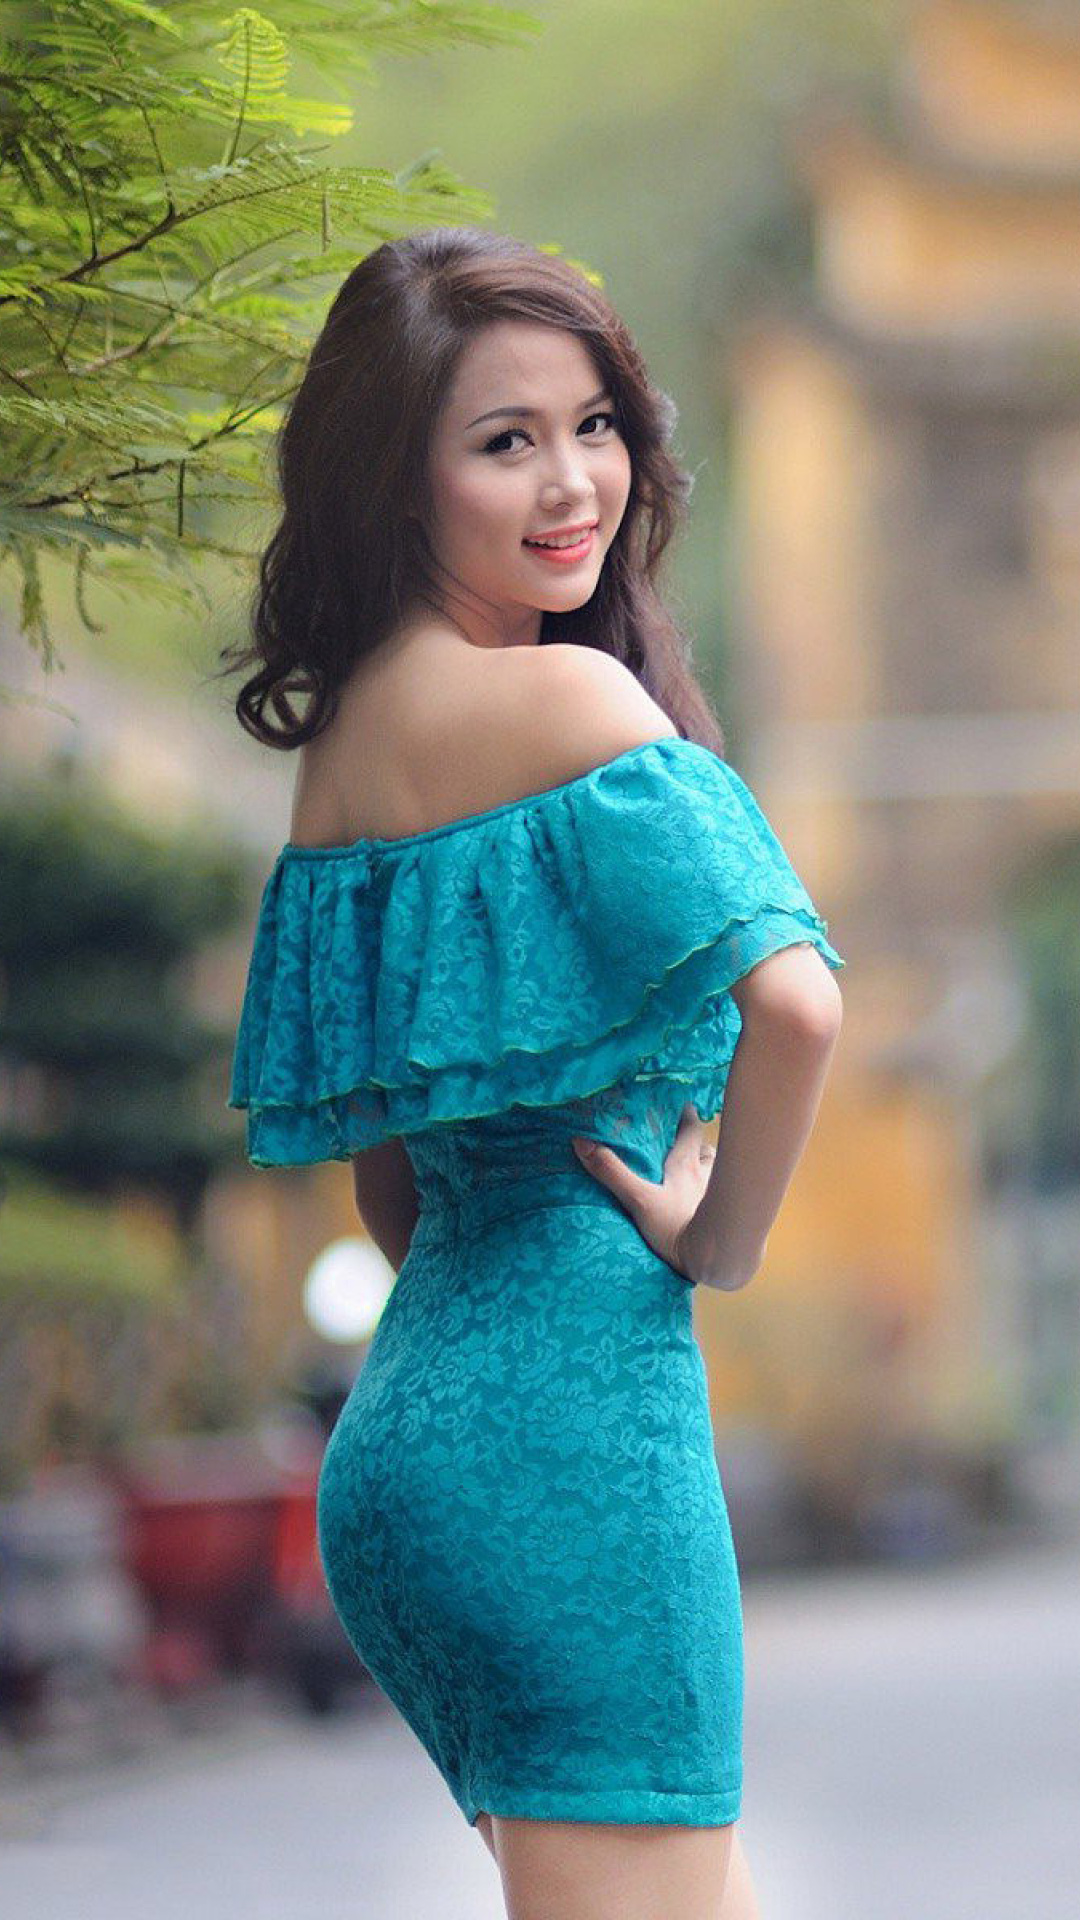 olympia fields asian girl personals 2018-7-20 press to search craigslist save search options close apts/housing for rent search titles only has image posted today bundle duplicates miles.